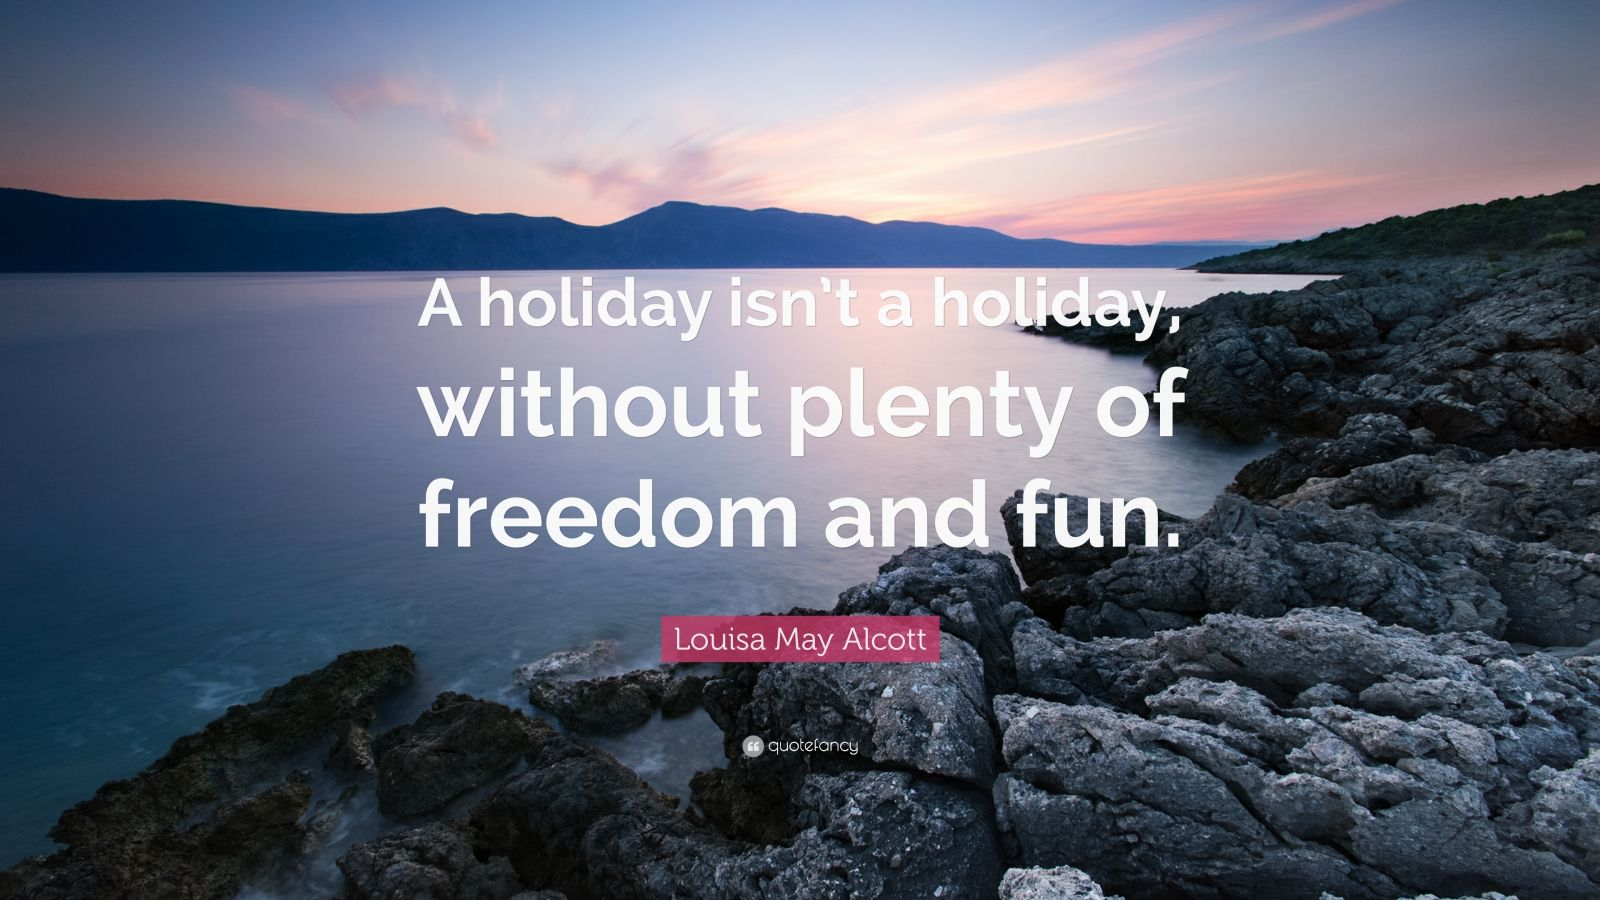 """Louisa May Alcott Quote: """"A holiday isn't a holiday, without plenty of freedom and fun."""""""